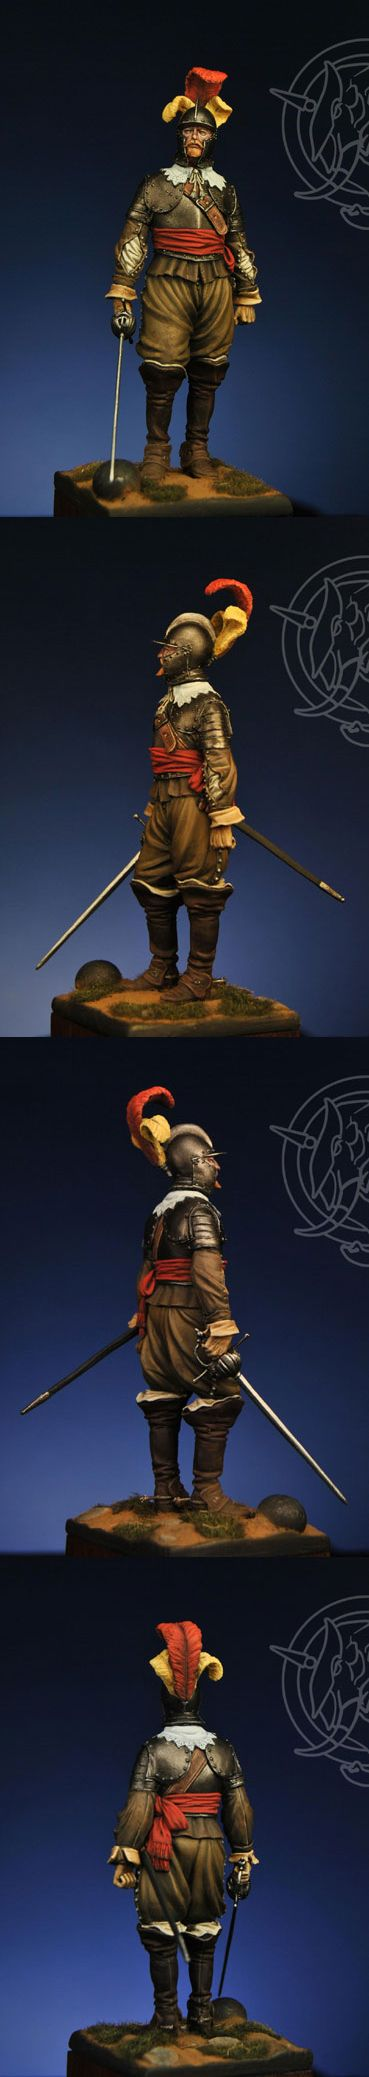 Officer of the Spanish Tercios at Rocroi (1643), by Romeo Models.